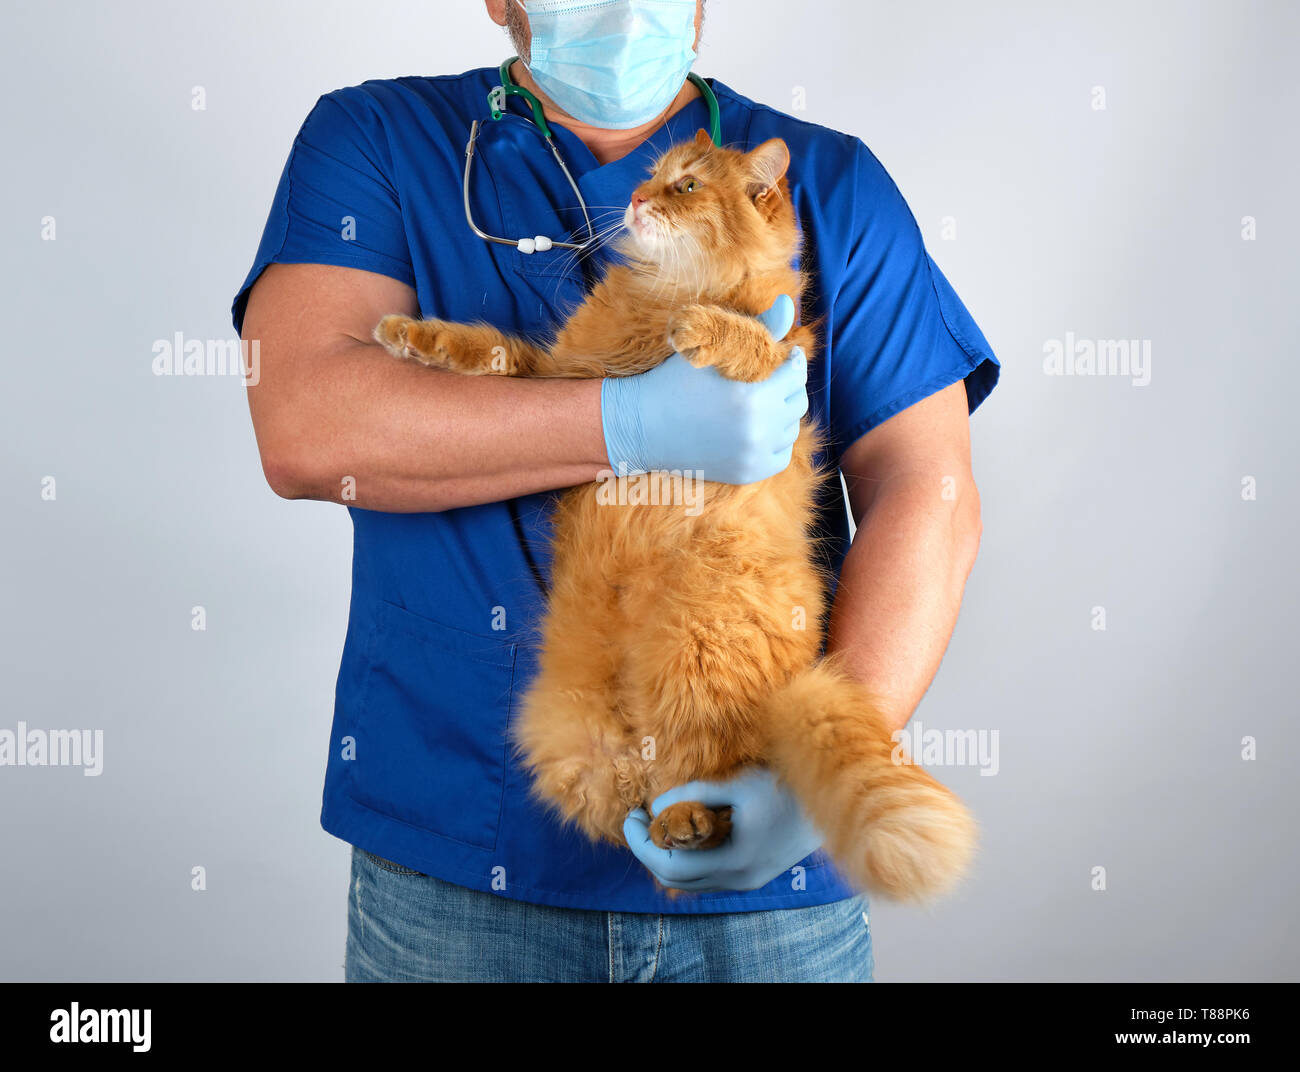 veterinarian doctor in blue uniform holding big fluffy red cat in hands on white background - Stock Image